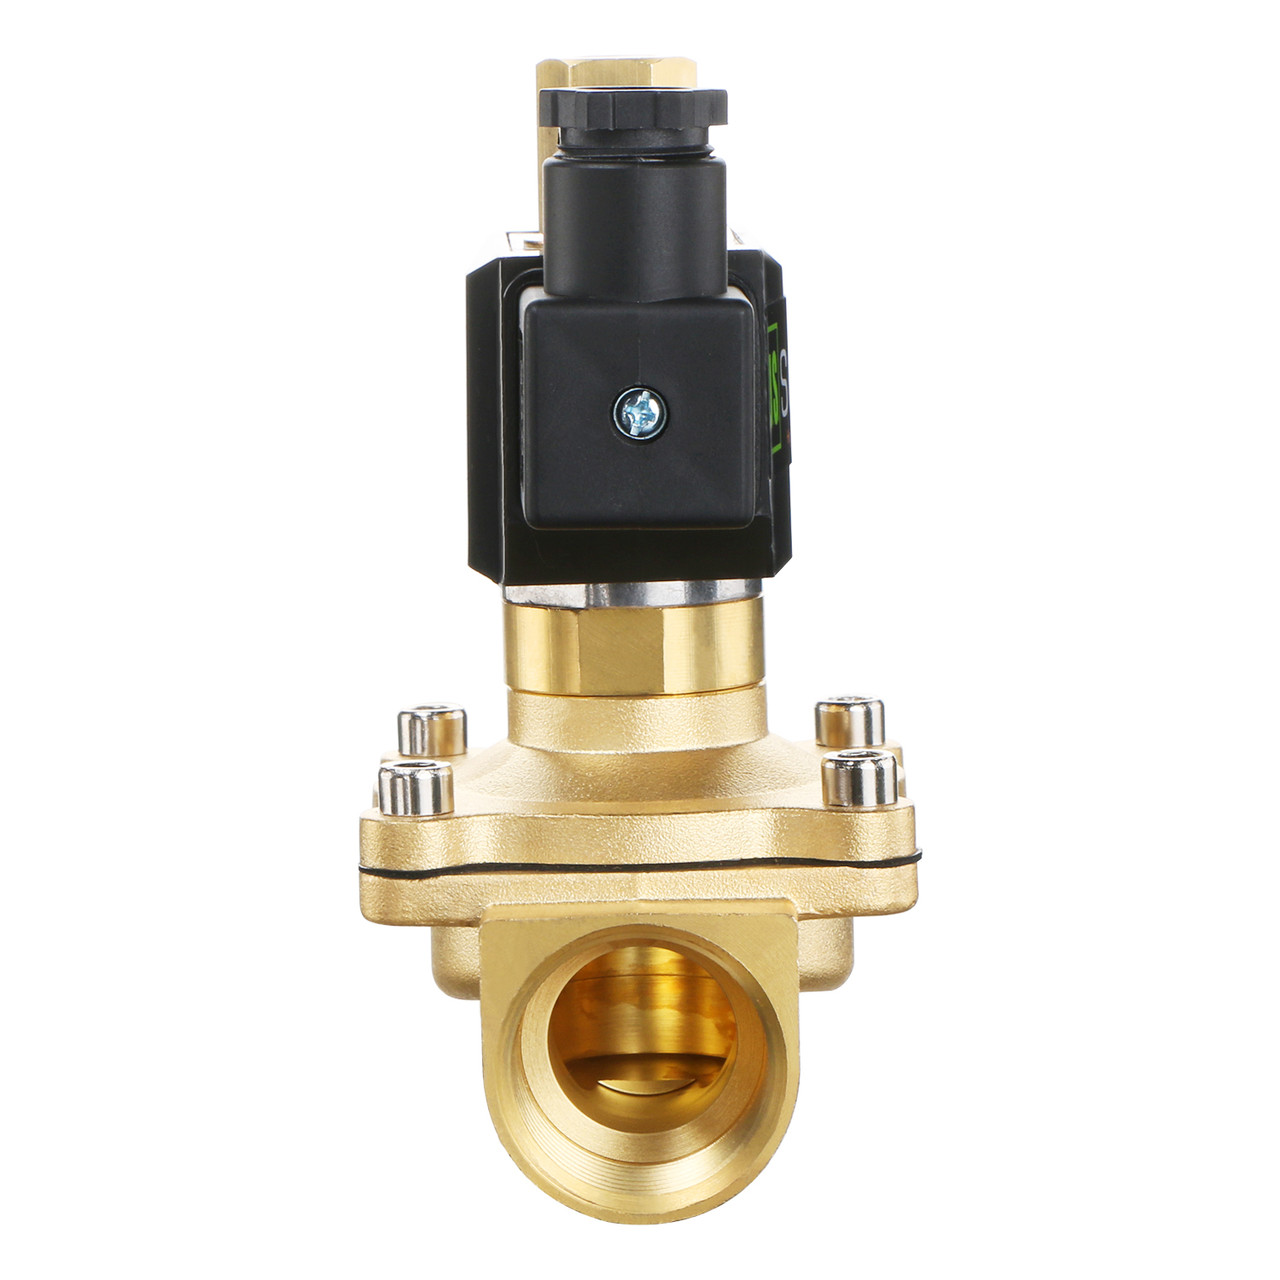 "USSOLID Electric Solenoid Valve- 1"" 110V AC Solenoid Valve Brass Body Normally Open, VITON SEAL"